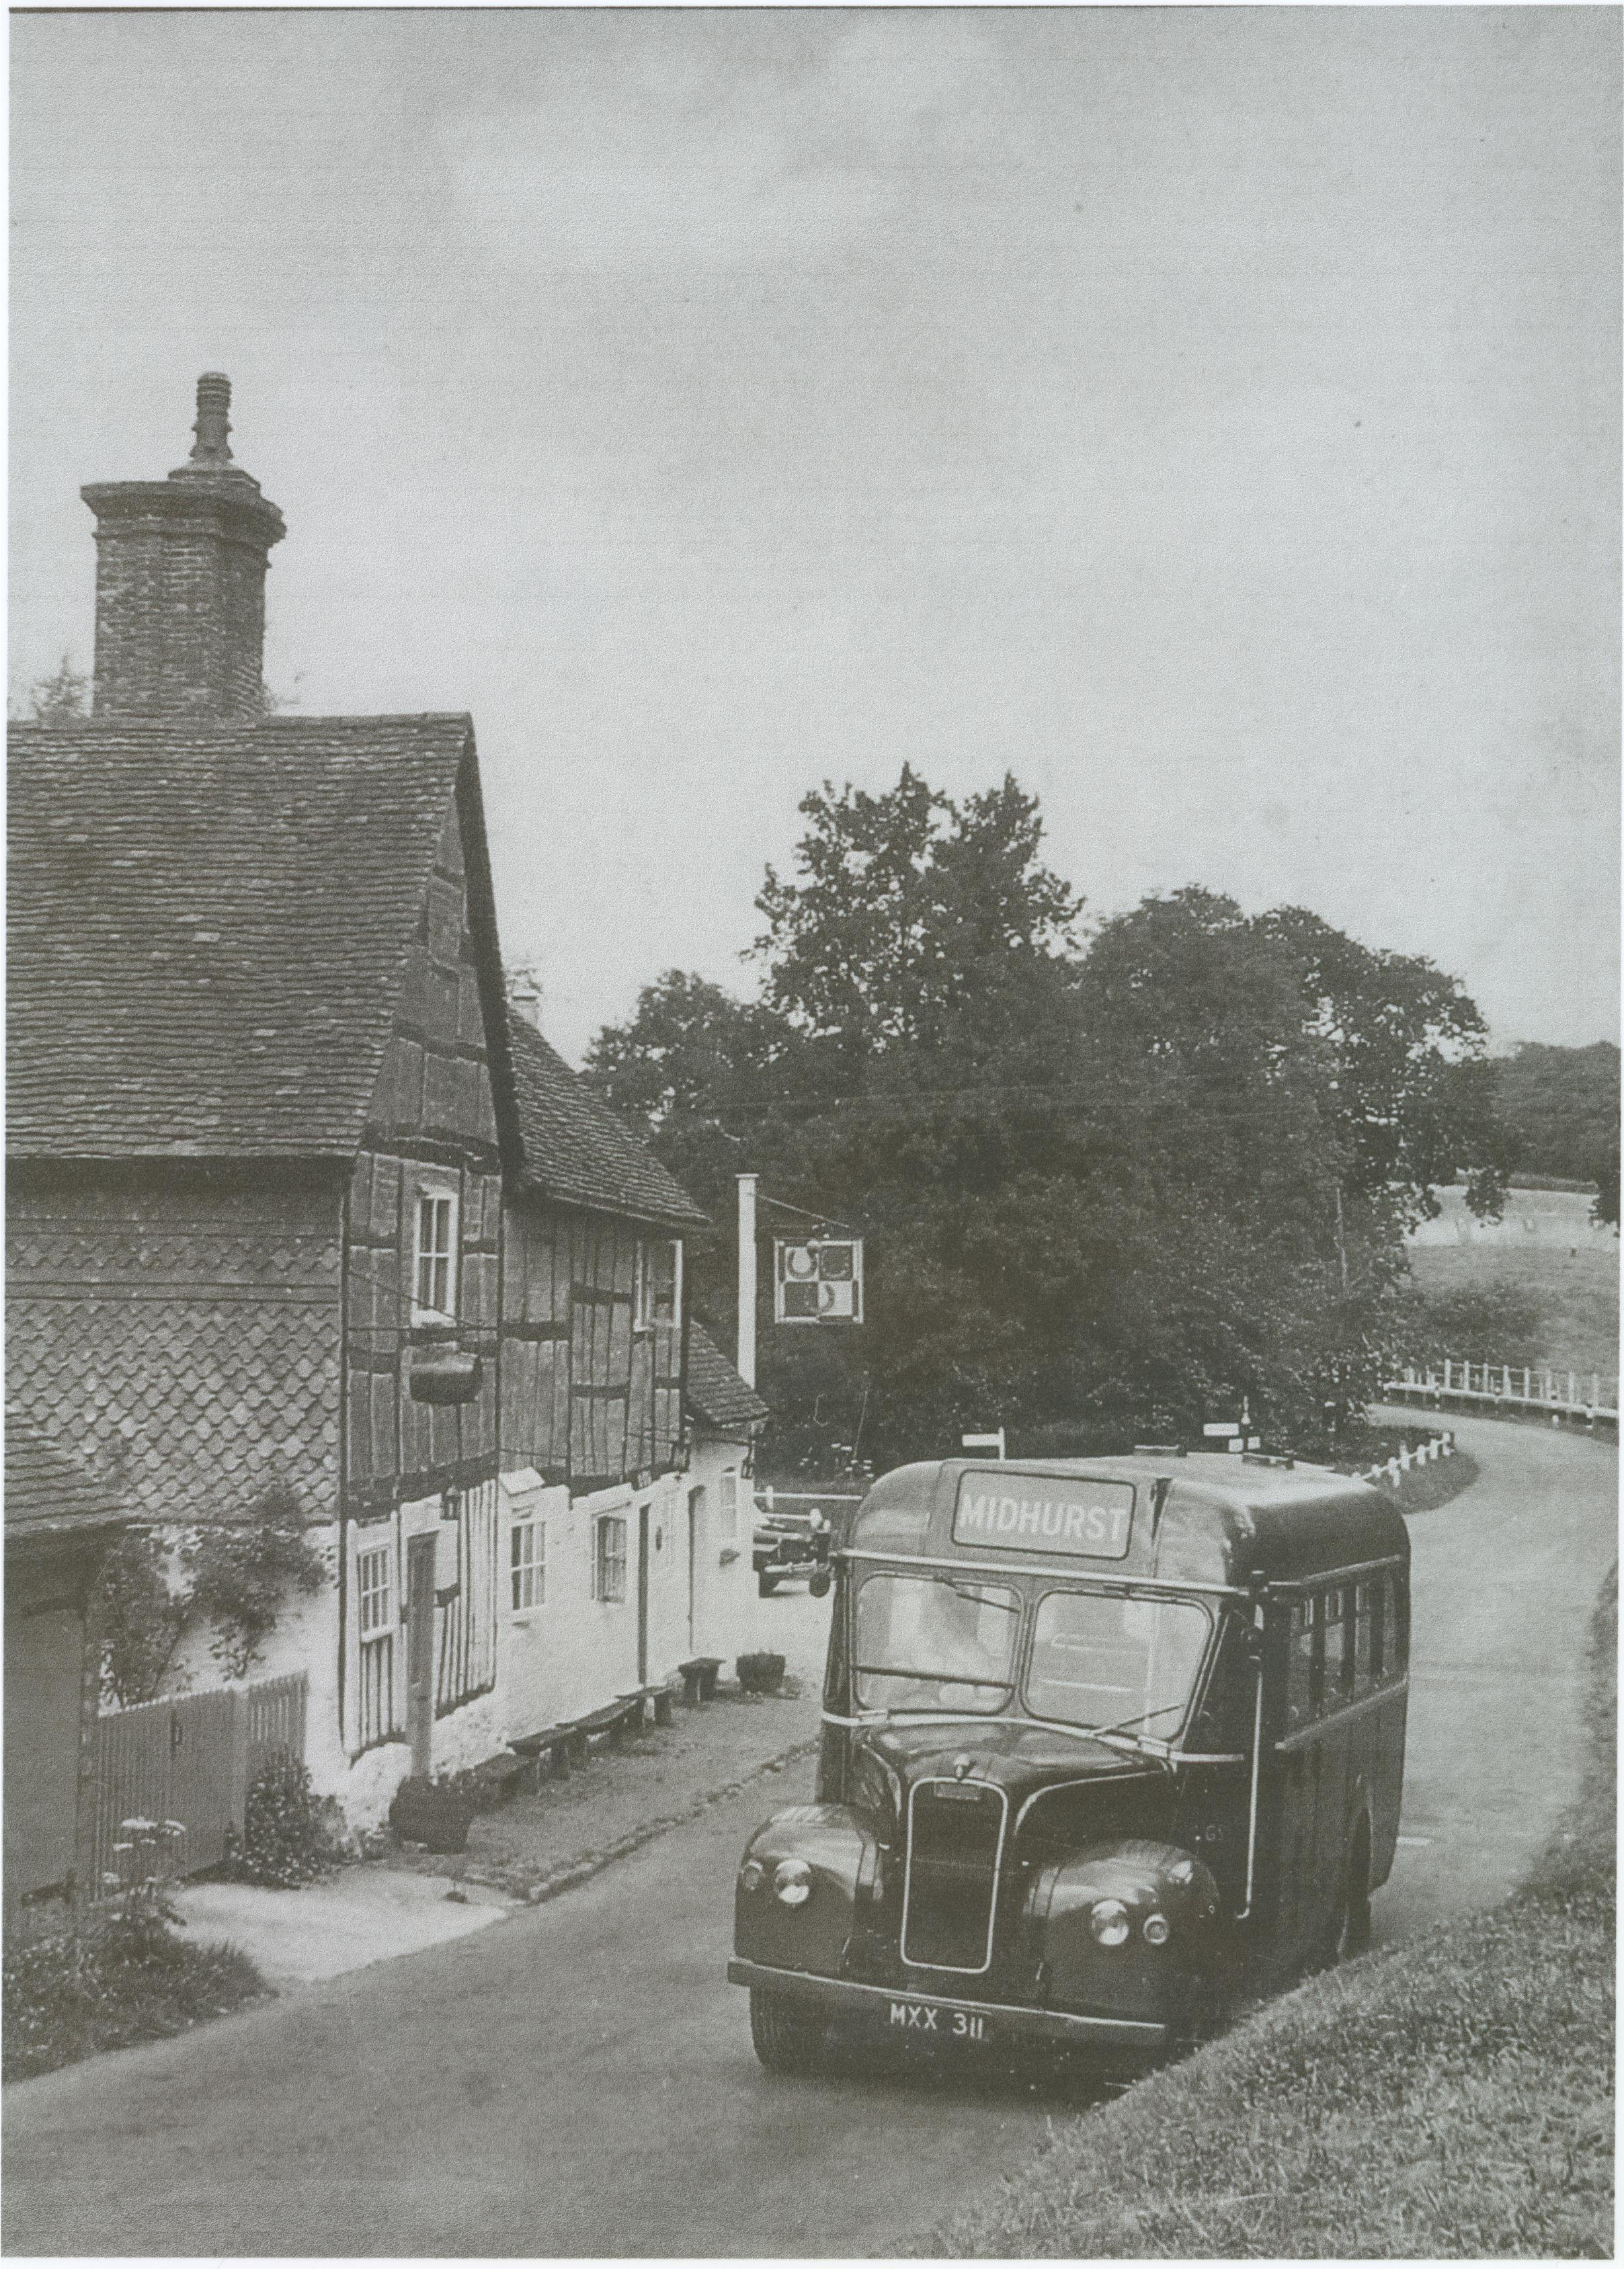 Southern Motorways' bus at Lickfold 1966